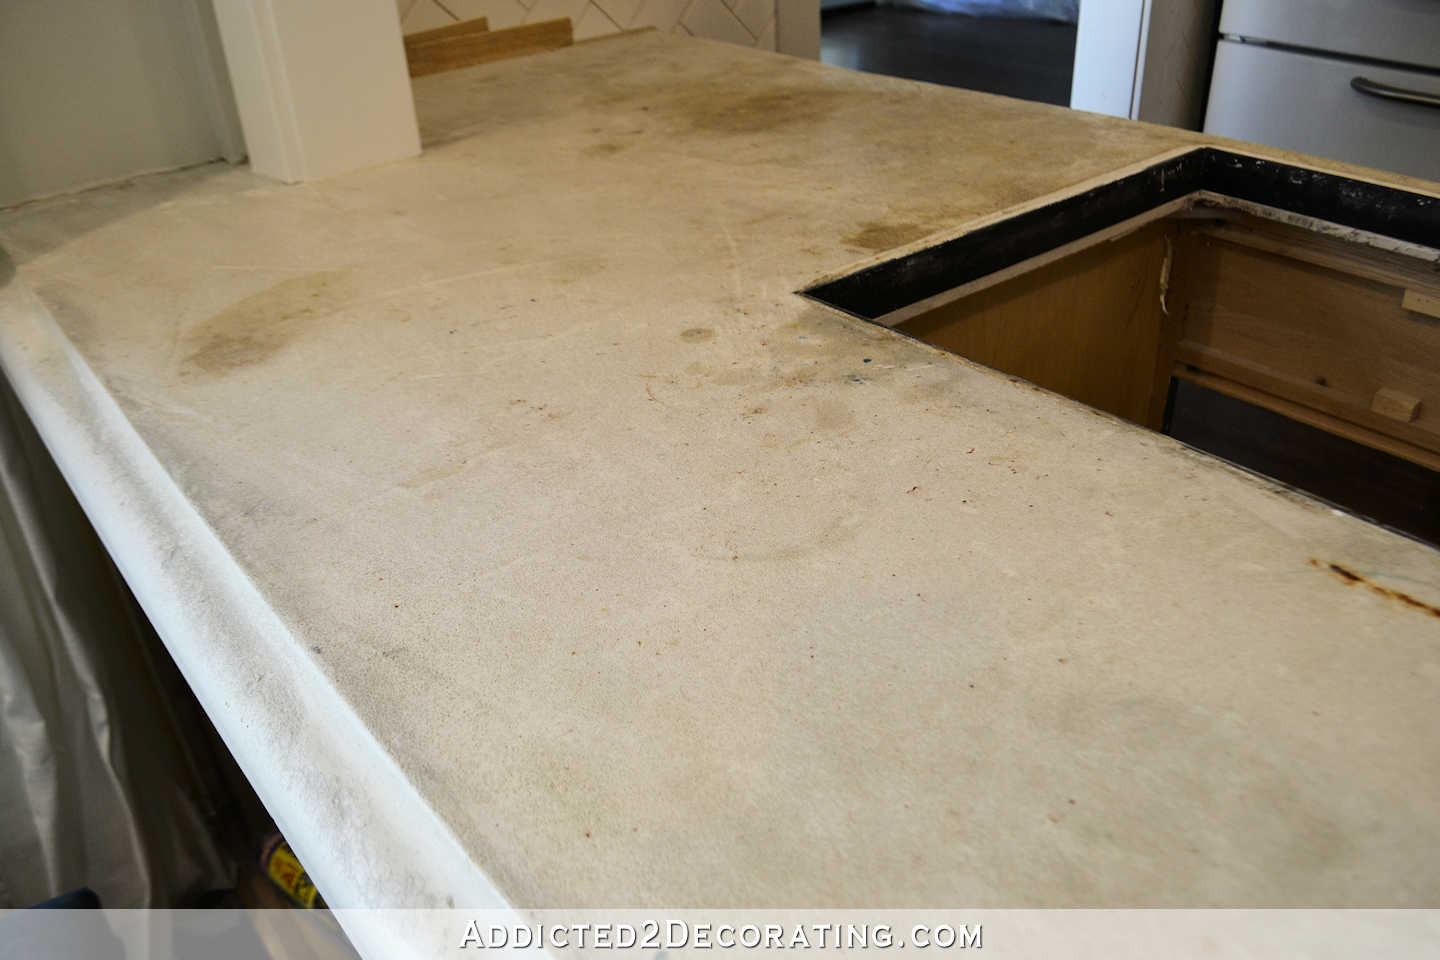 What Kind Of Concrete To Use For Countertops Refinishing My Concrete Kitchen Countertops Part 1